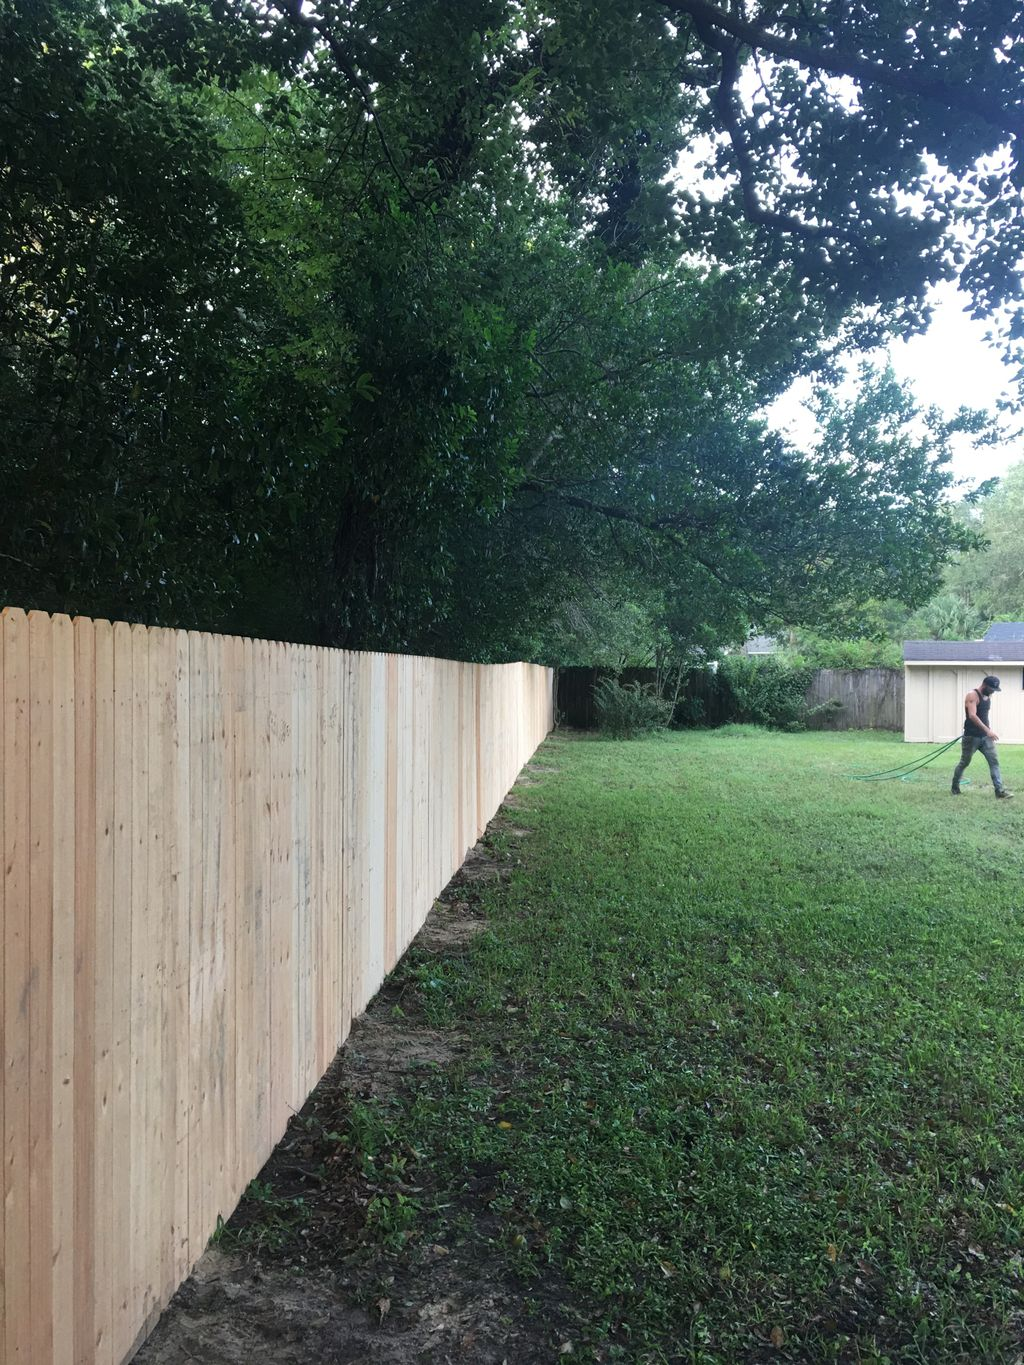 Fence install on rear fence line